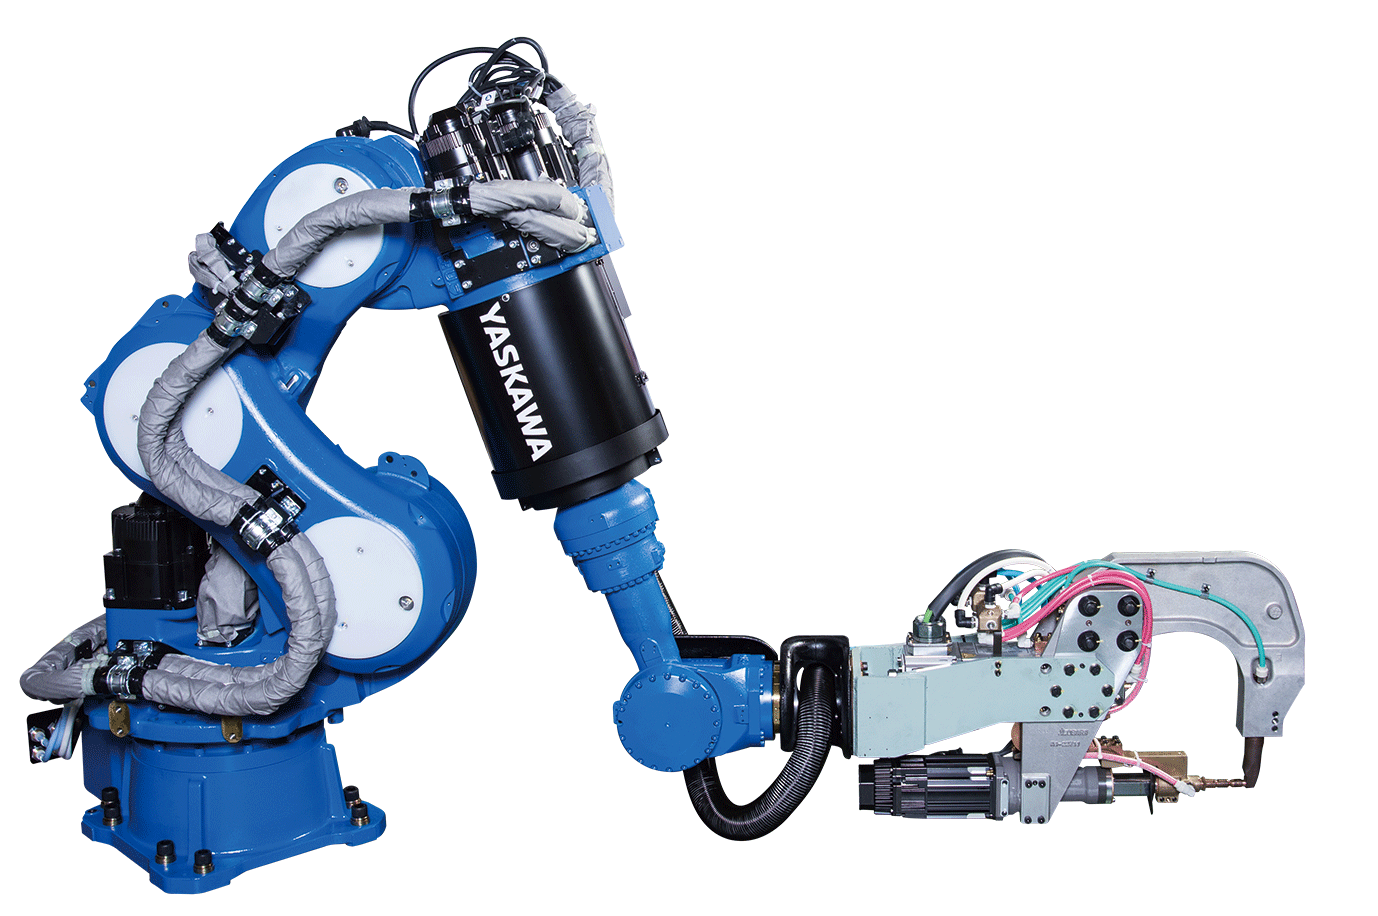 Engineering_YASKAWA-Motoman_Robotic-System-Integrator_SP100B.png